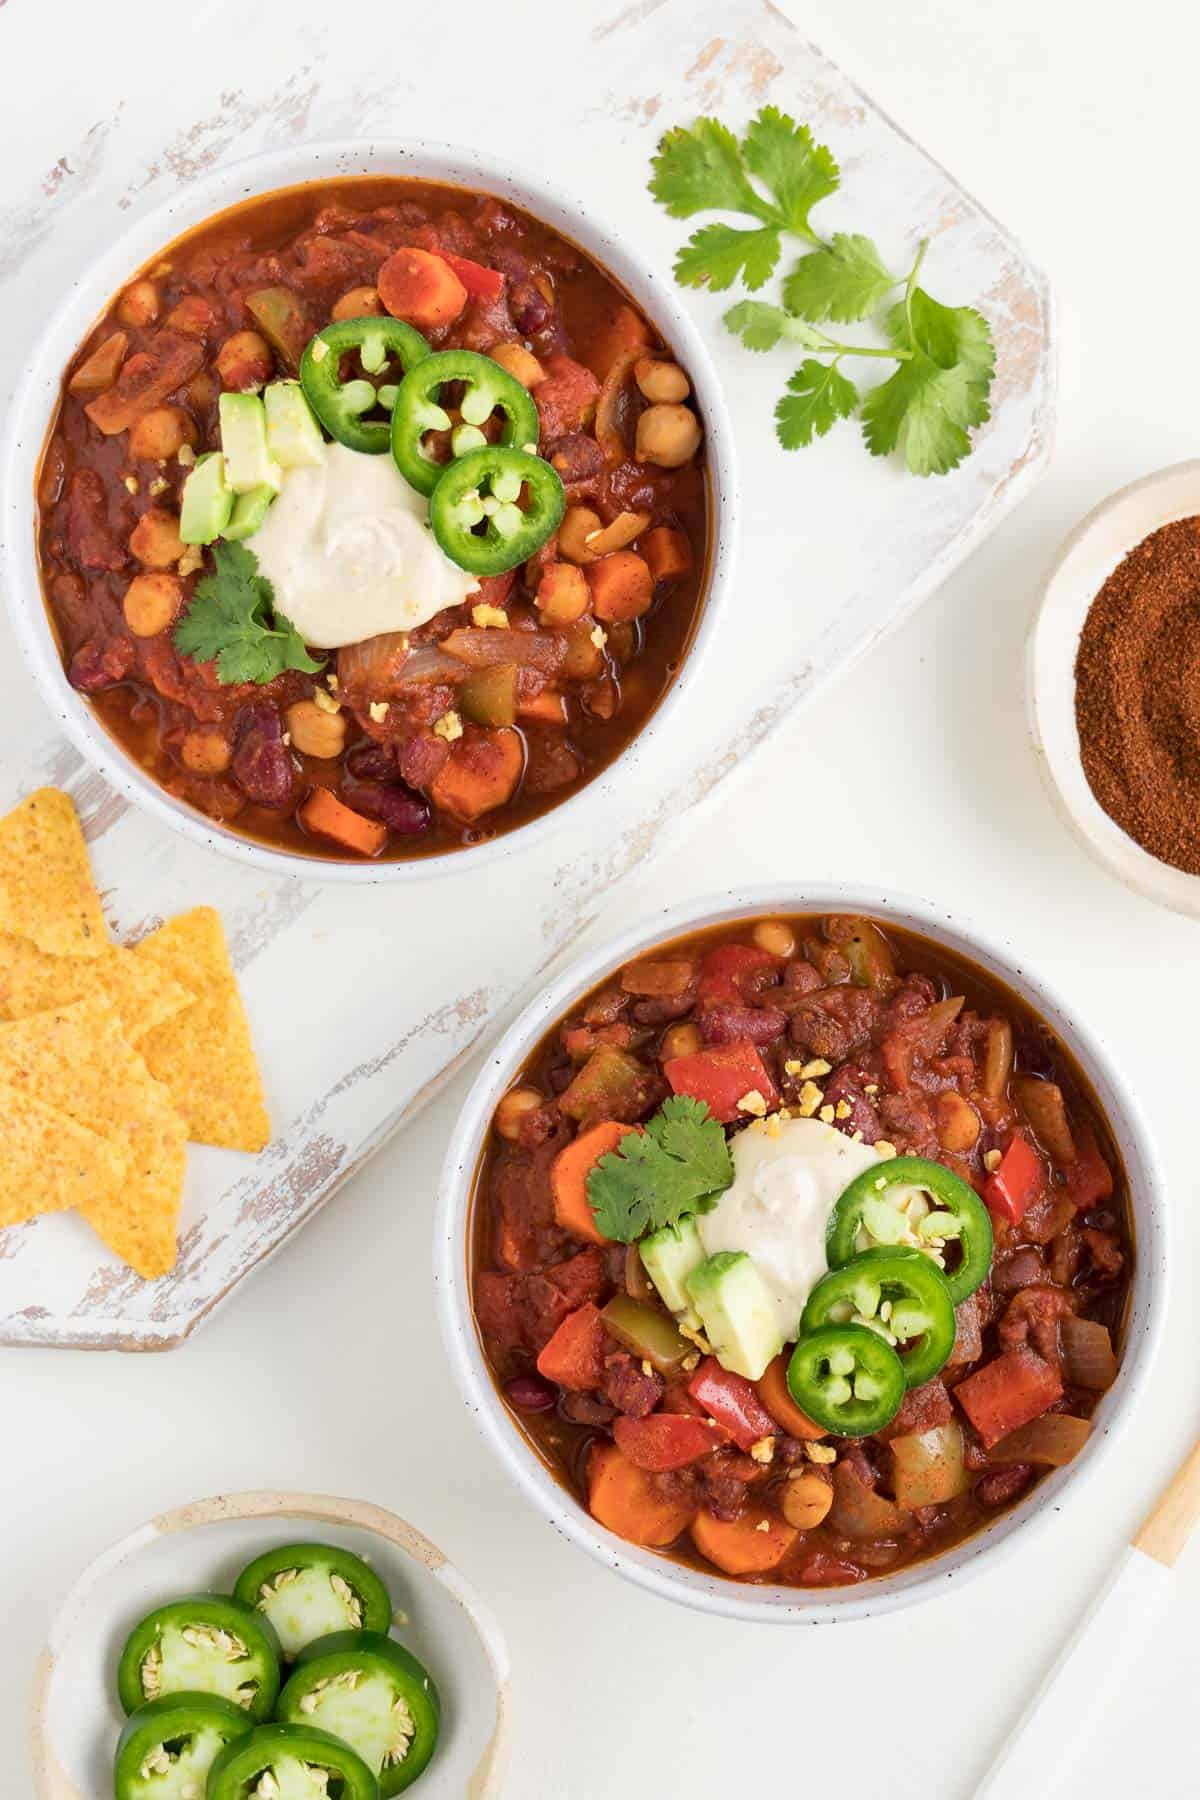 two bowls of chili on a white surface alongside corn tortilla chips, chili powder, cilantro, and sliced jalapeño peppers